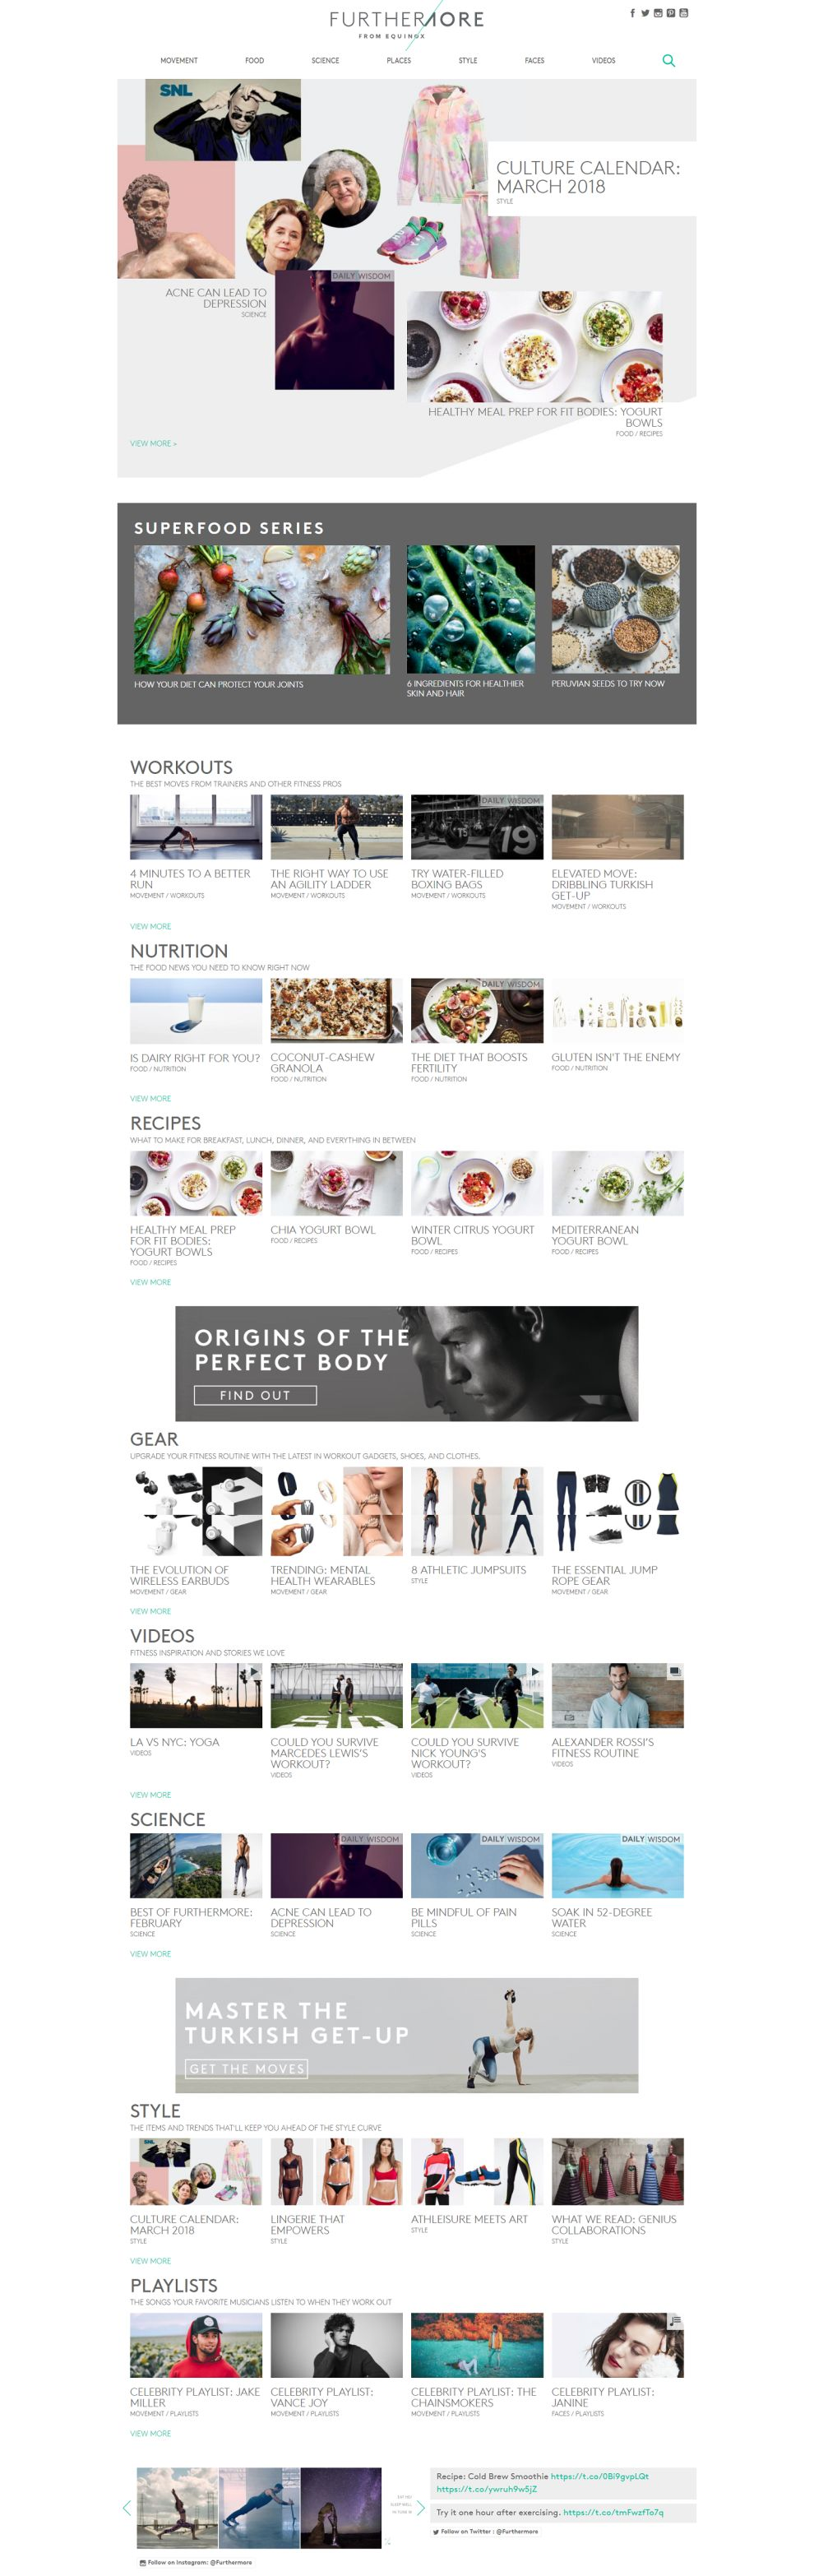 Furthermore from Equinox Best Website Design Homepage